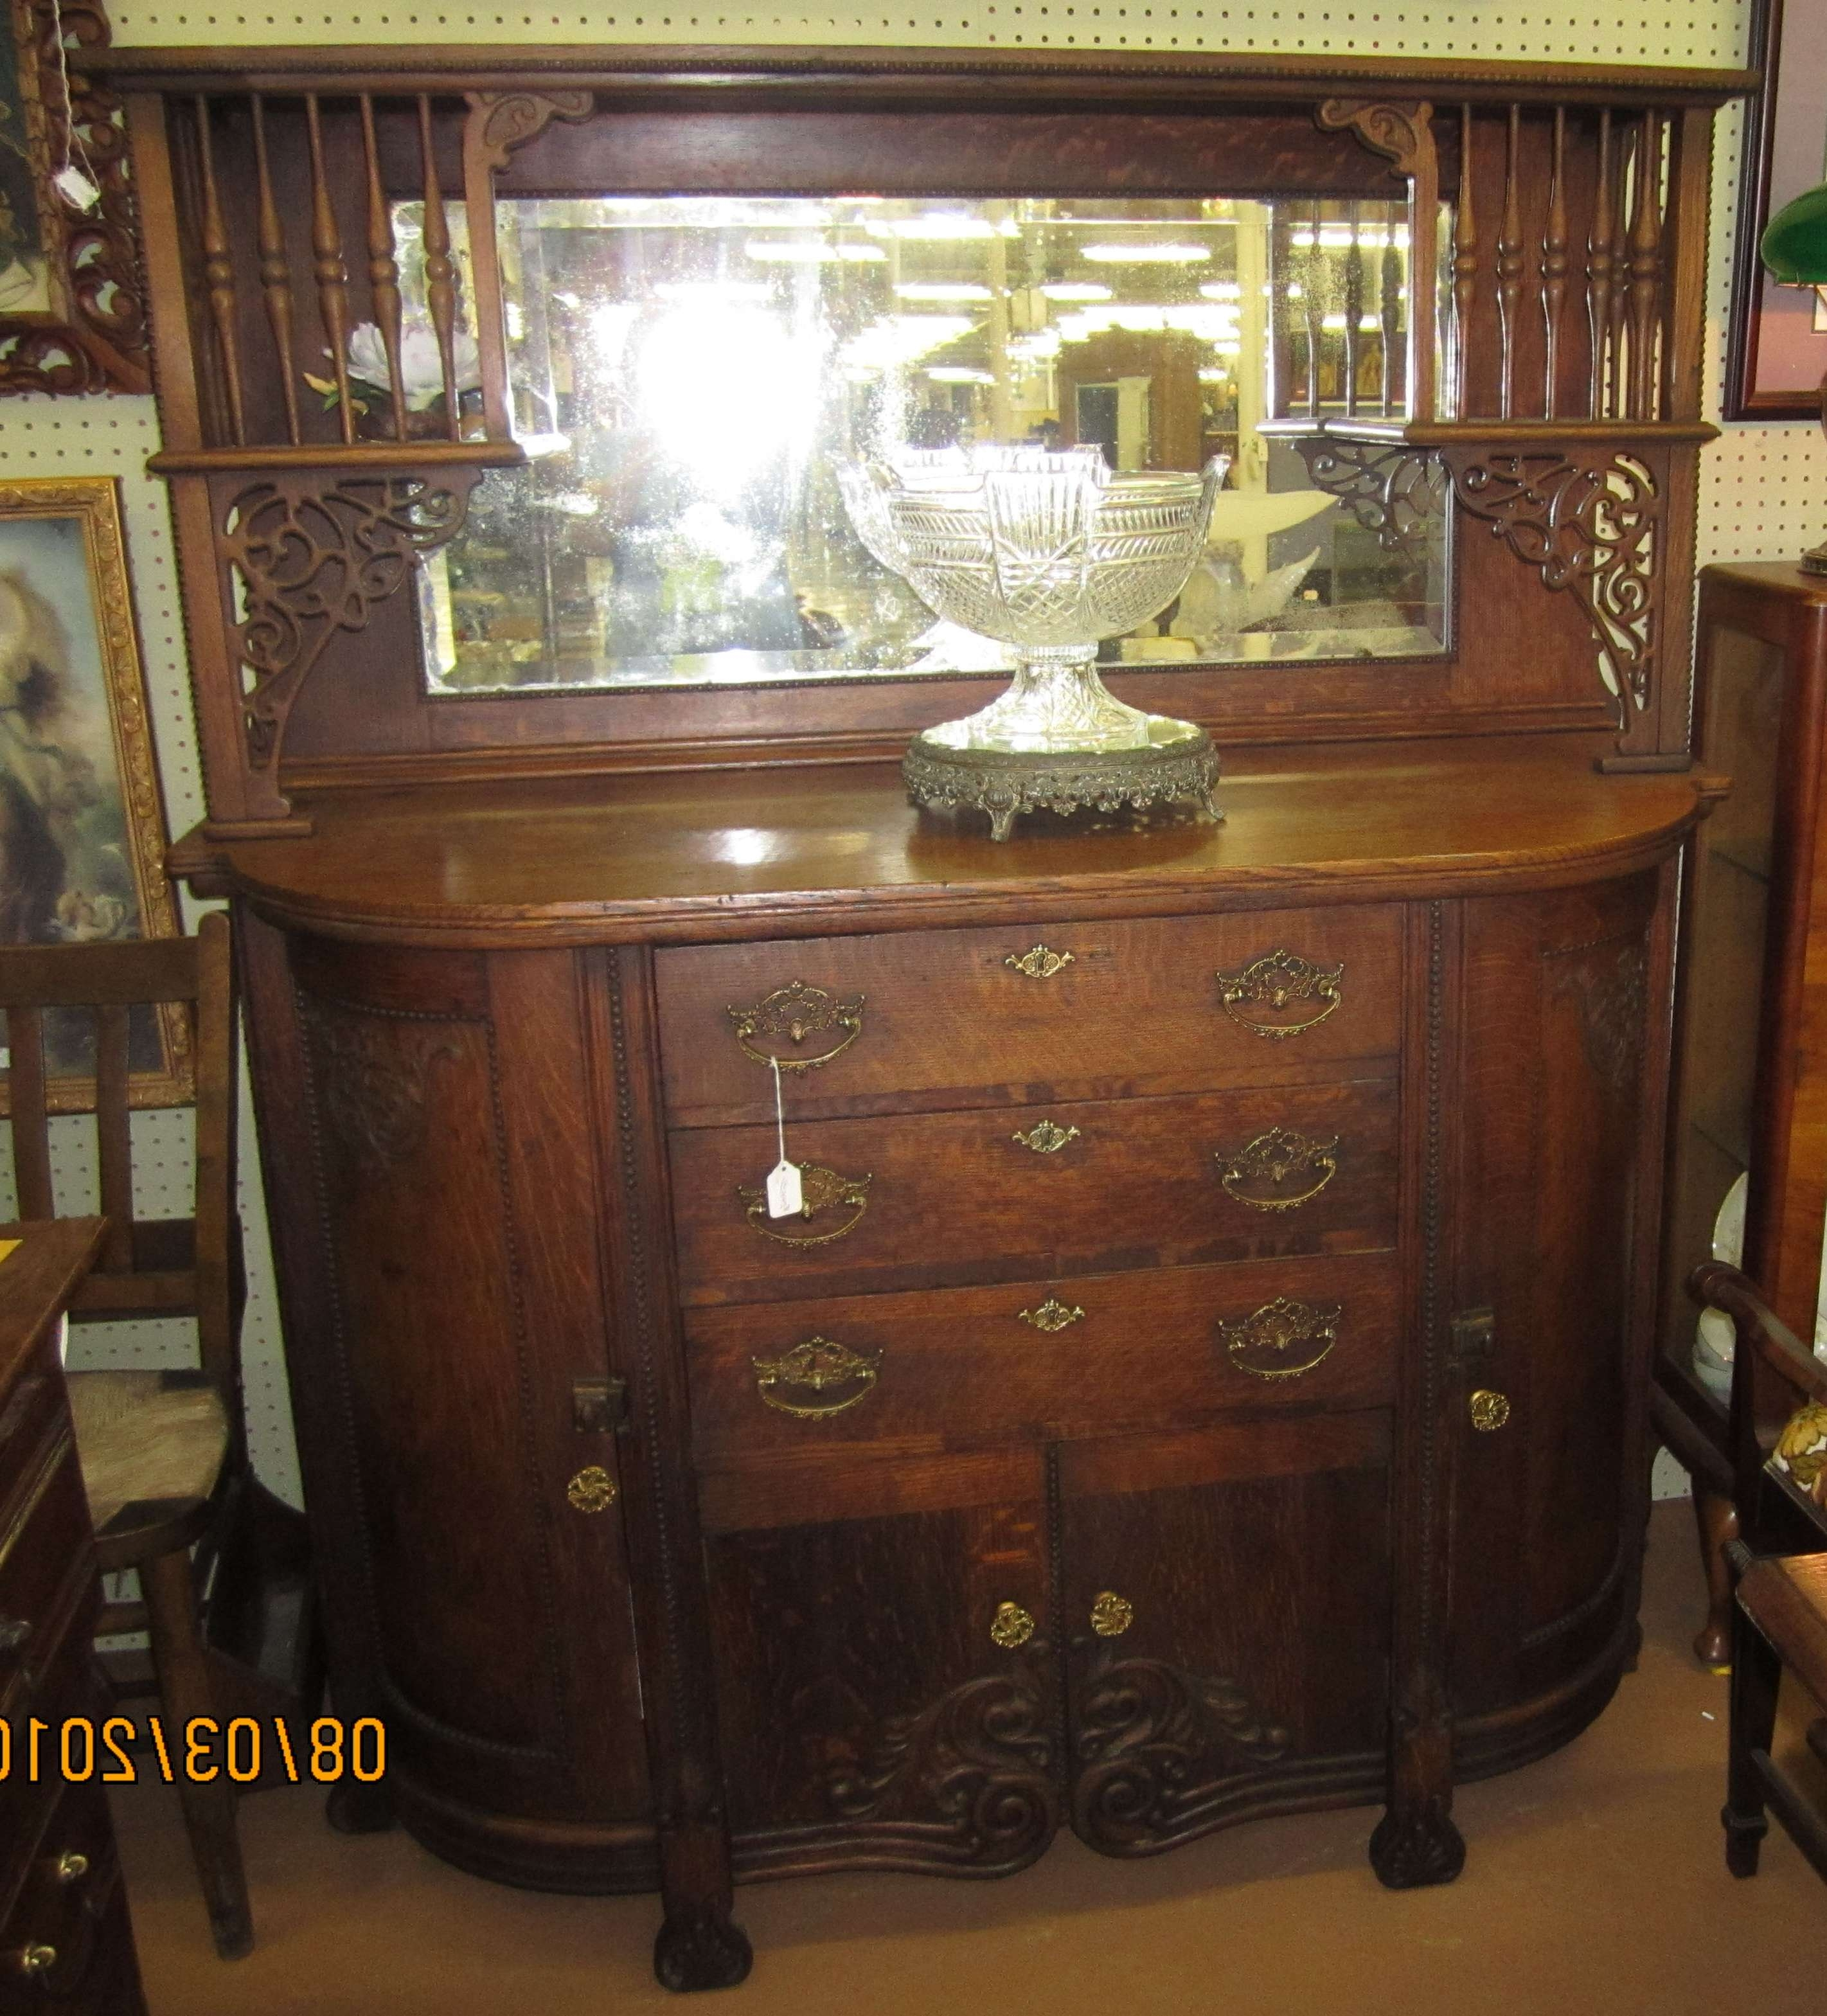 Explore Photos of Antique Sideboards Buffets (Showing 7 of 20 Photos)